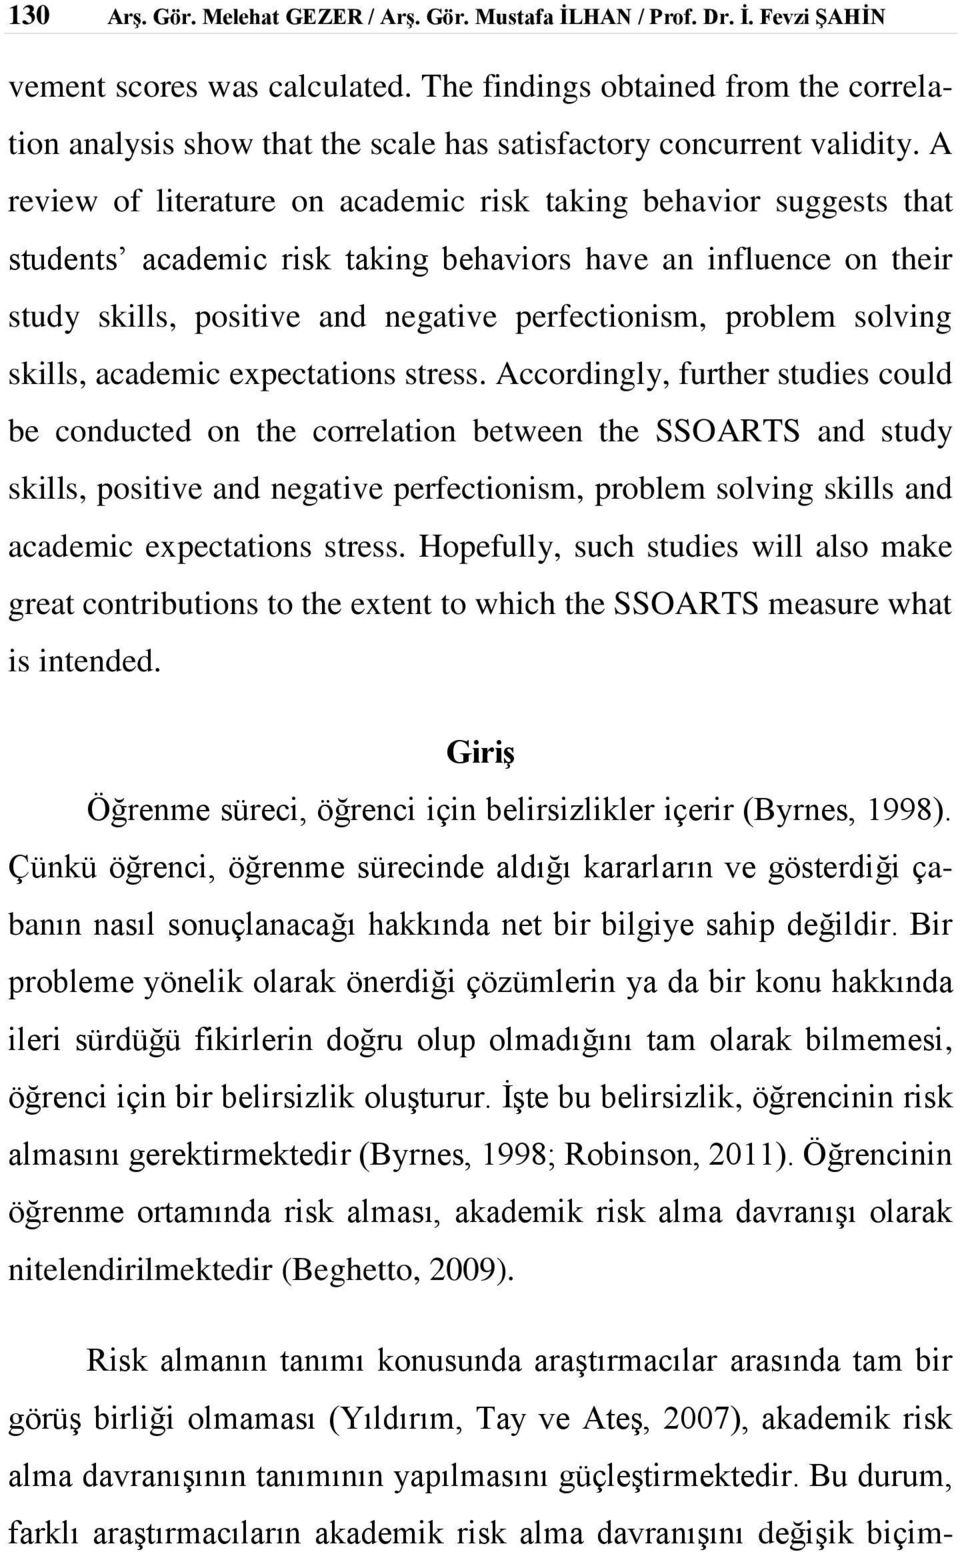 perfectionism, problem solving skills, academic expectations stress Accordingly, further studies could be conducted on the correlation between the SSOARTS and study skills, positive and negative